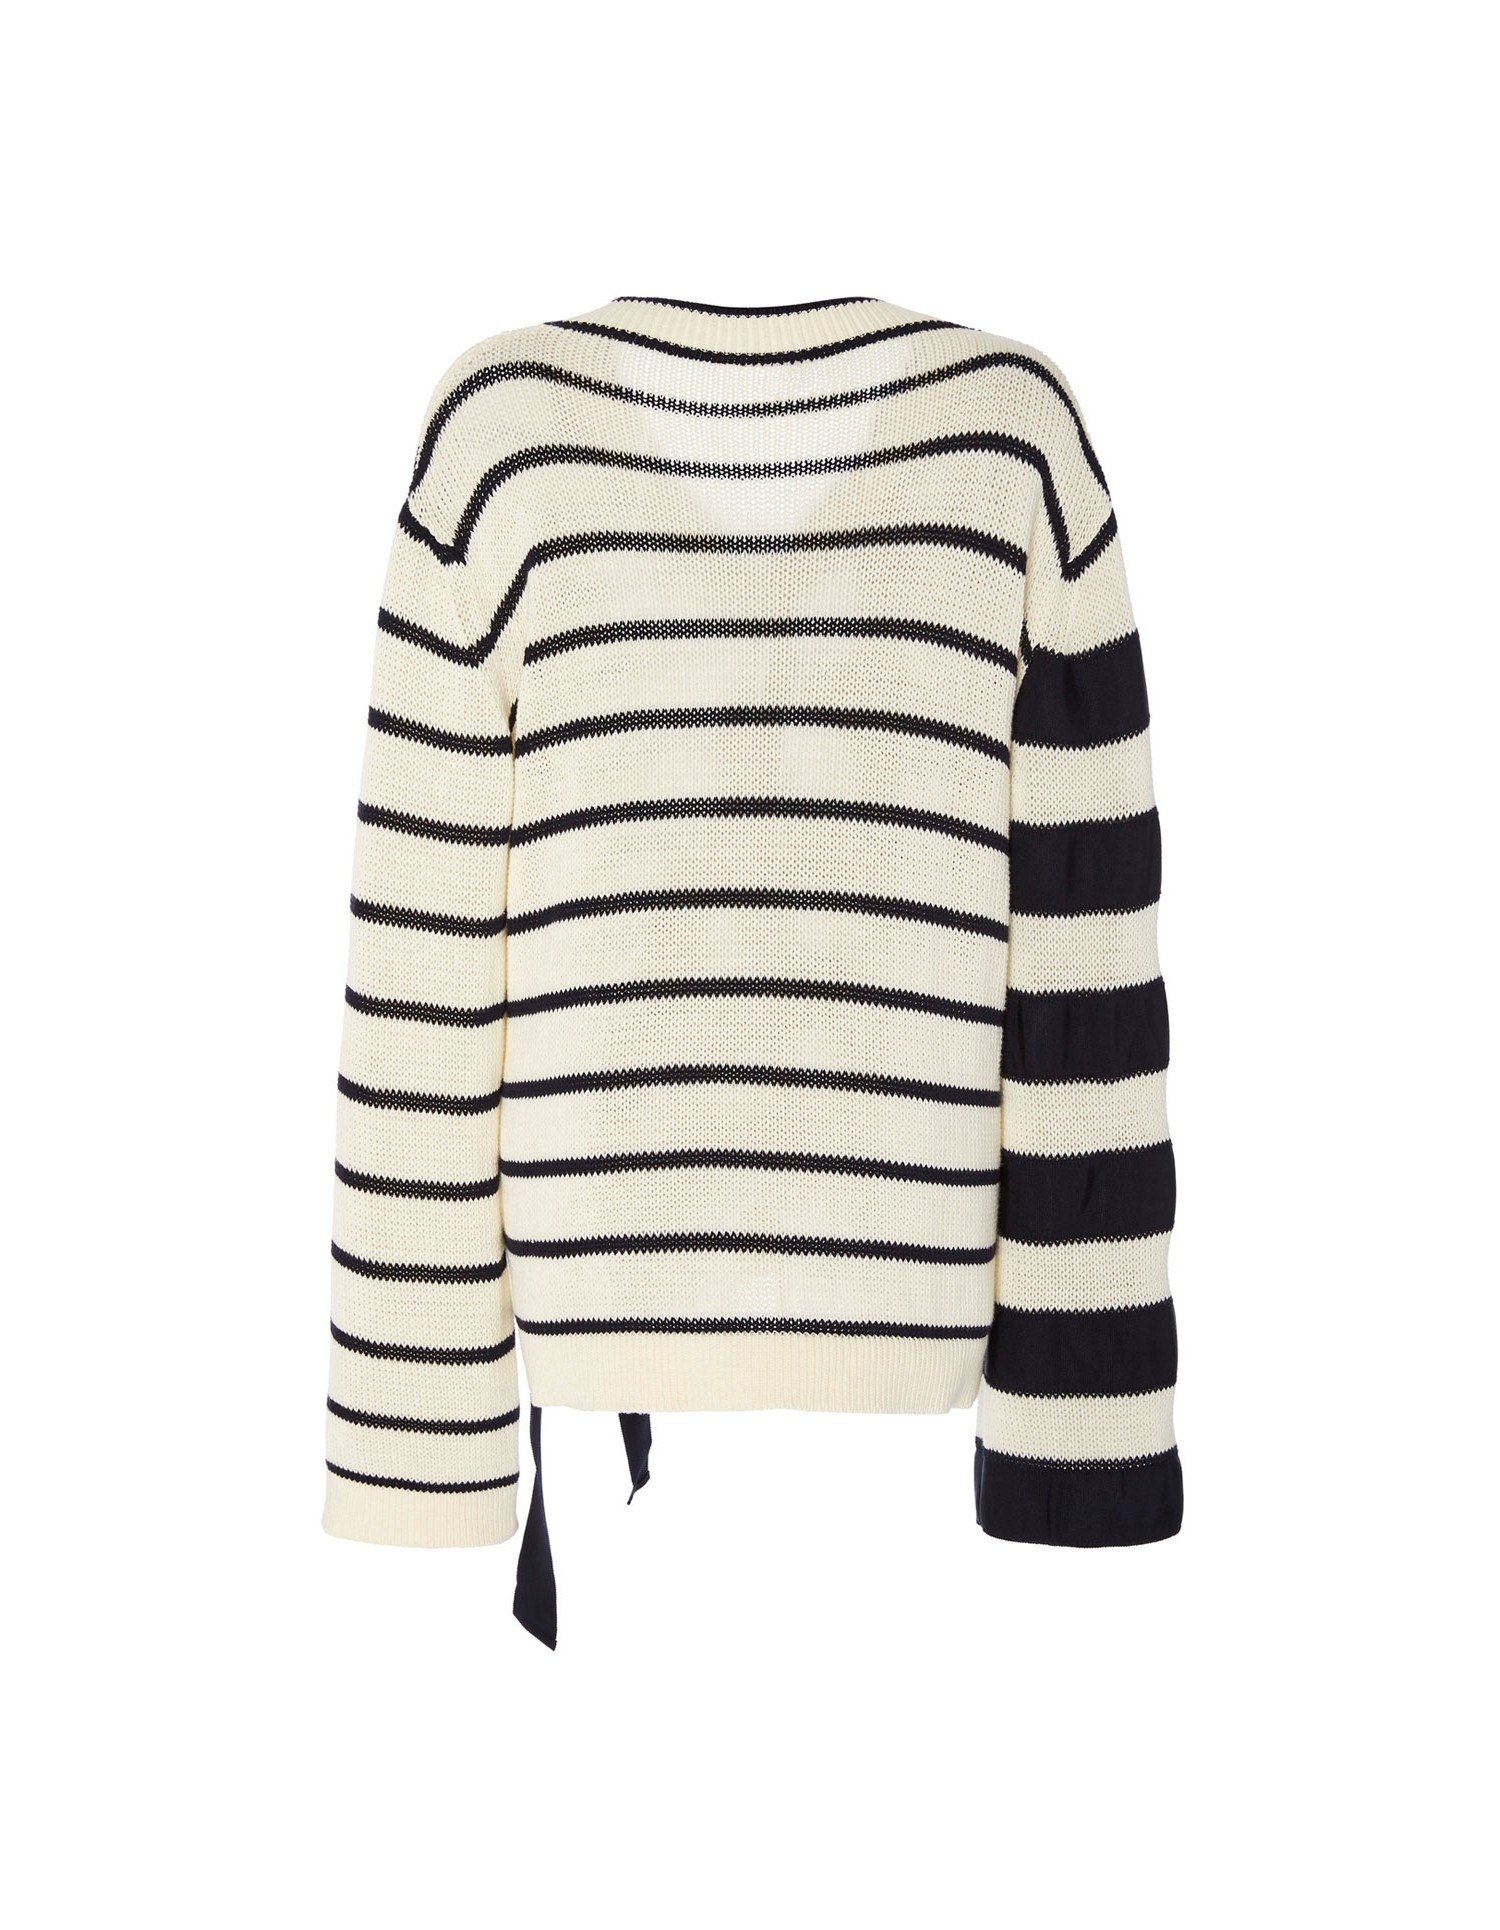 Monse Women's V-Neck Falling Stripes Pullover Back